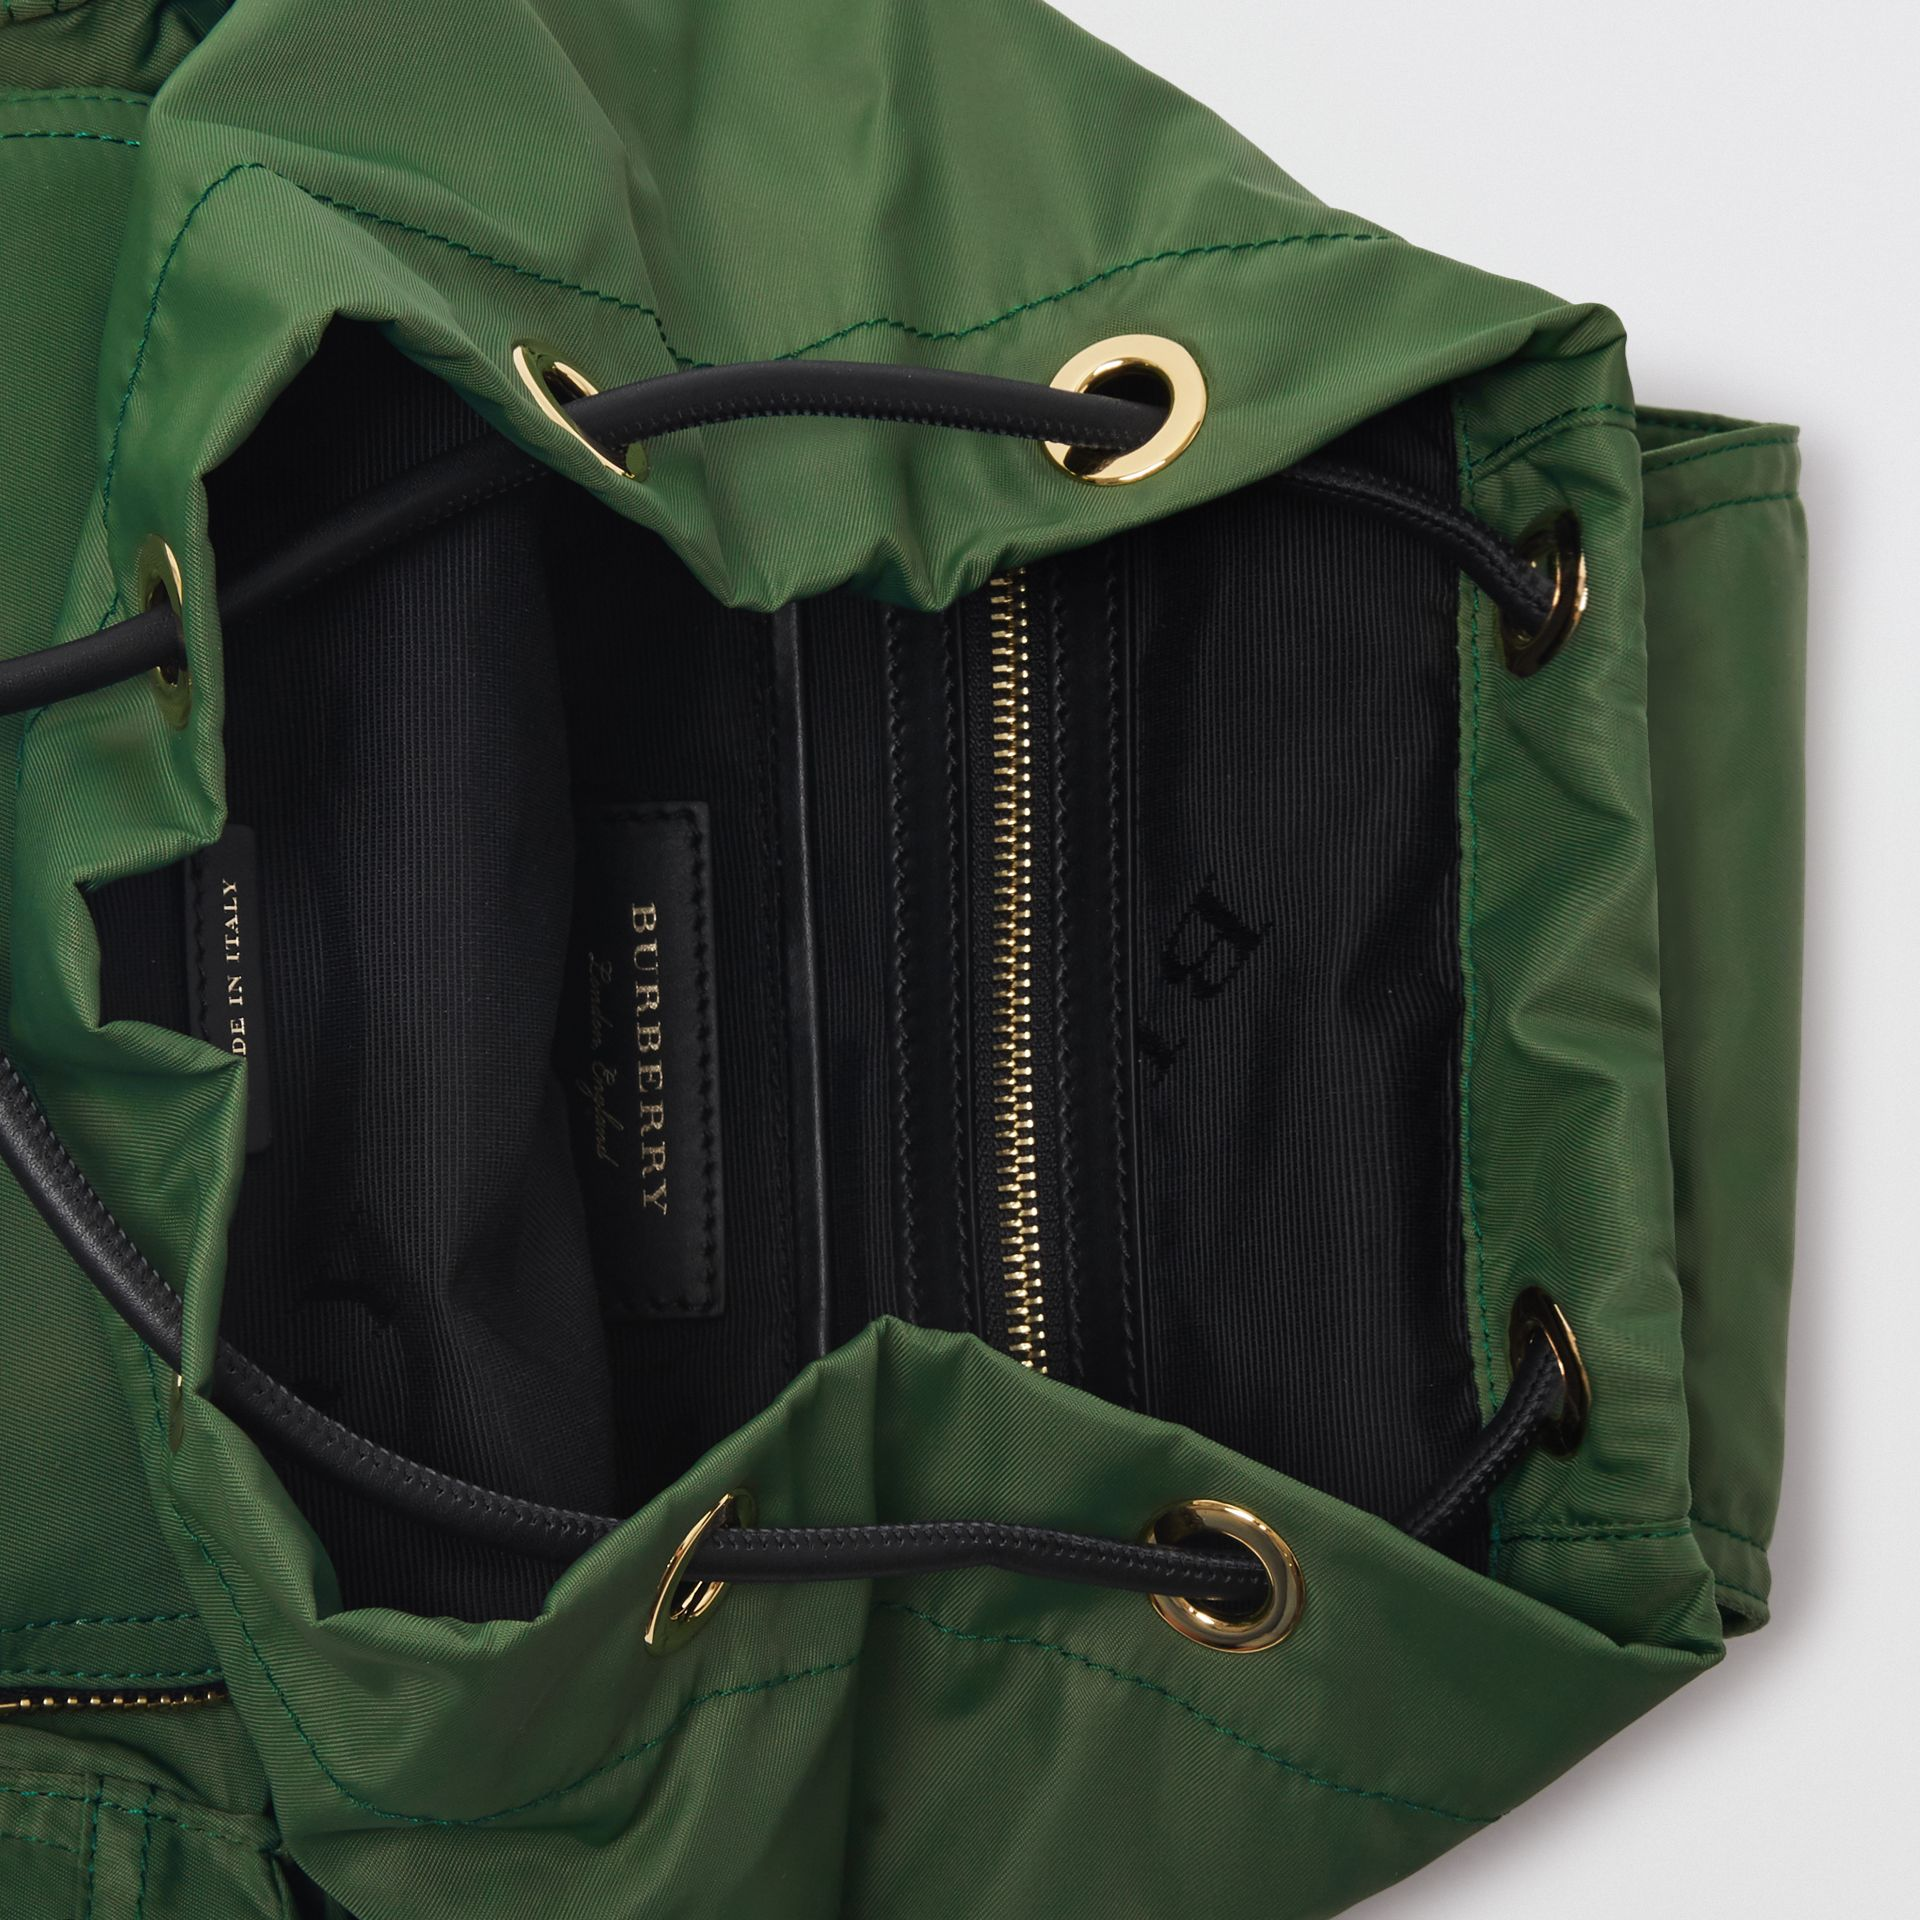 Sac The Rucksack moyen en nylon technique et cuir (Vert Racing) - Femme | Burberry Canada - photo de la galerie 4